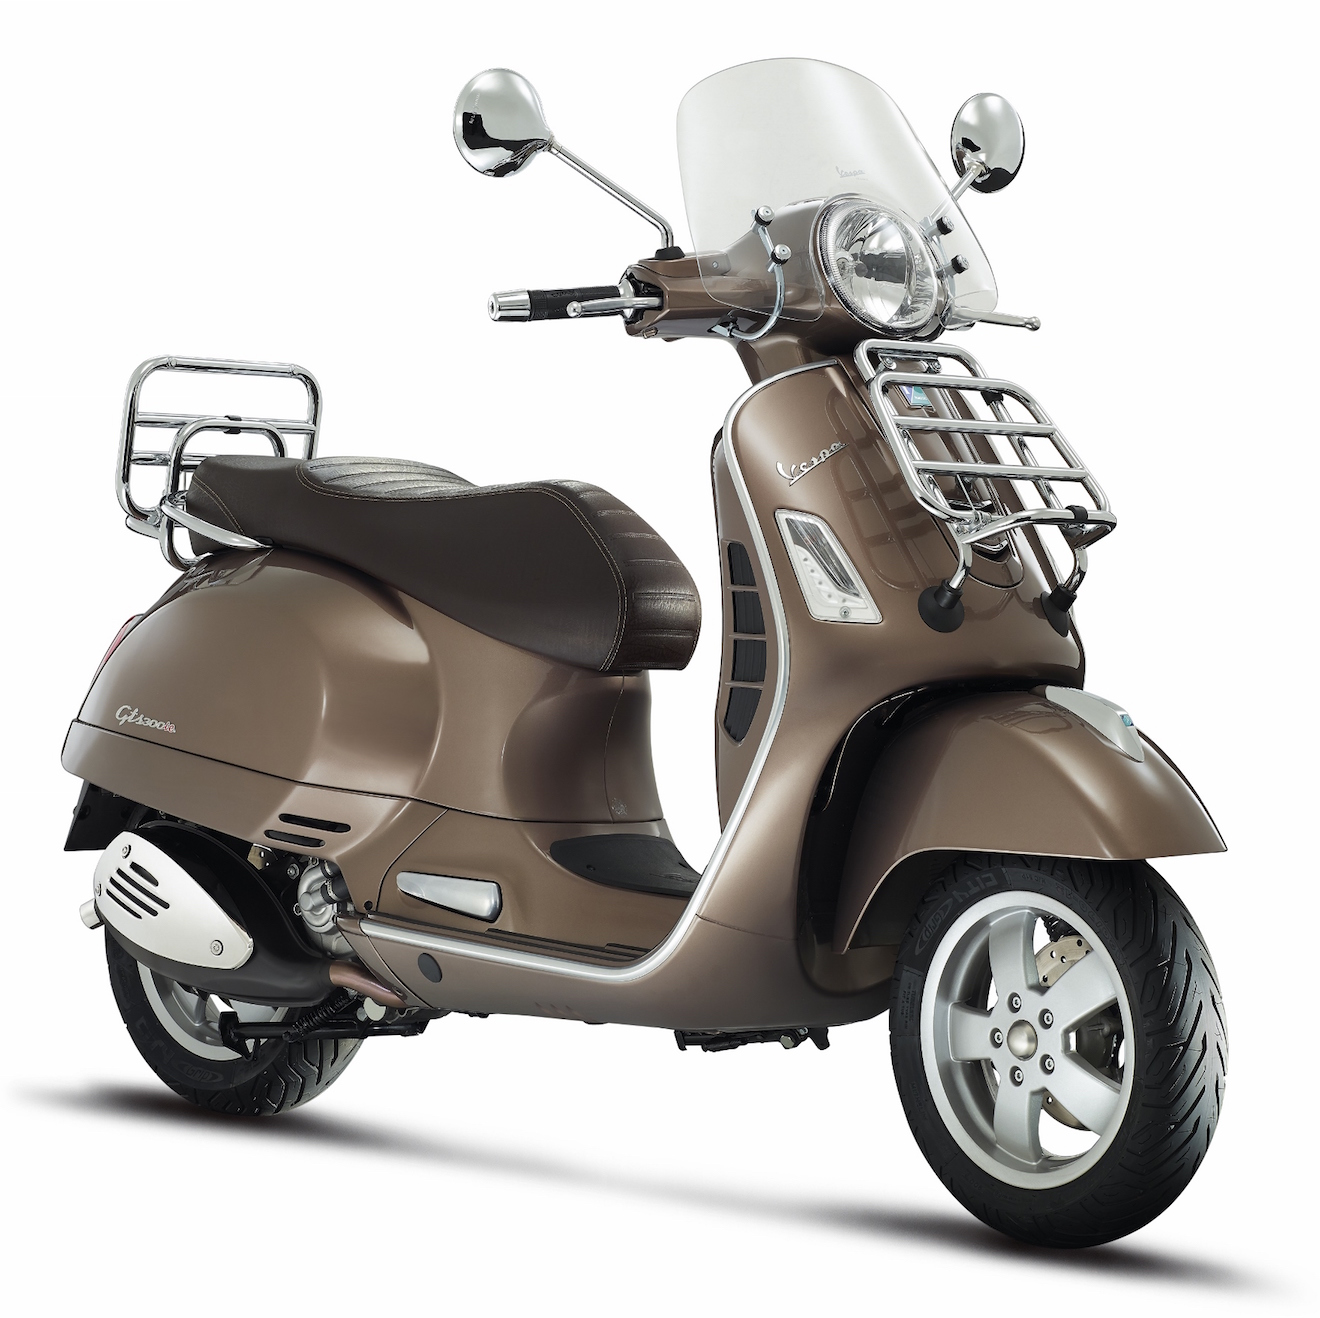 all new vespa gts 300 brings pure bred italian innovations komarjohari. Black Bedroom Furniture Sets. Home Design Ideas